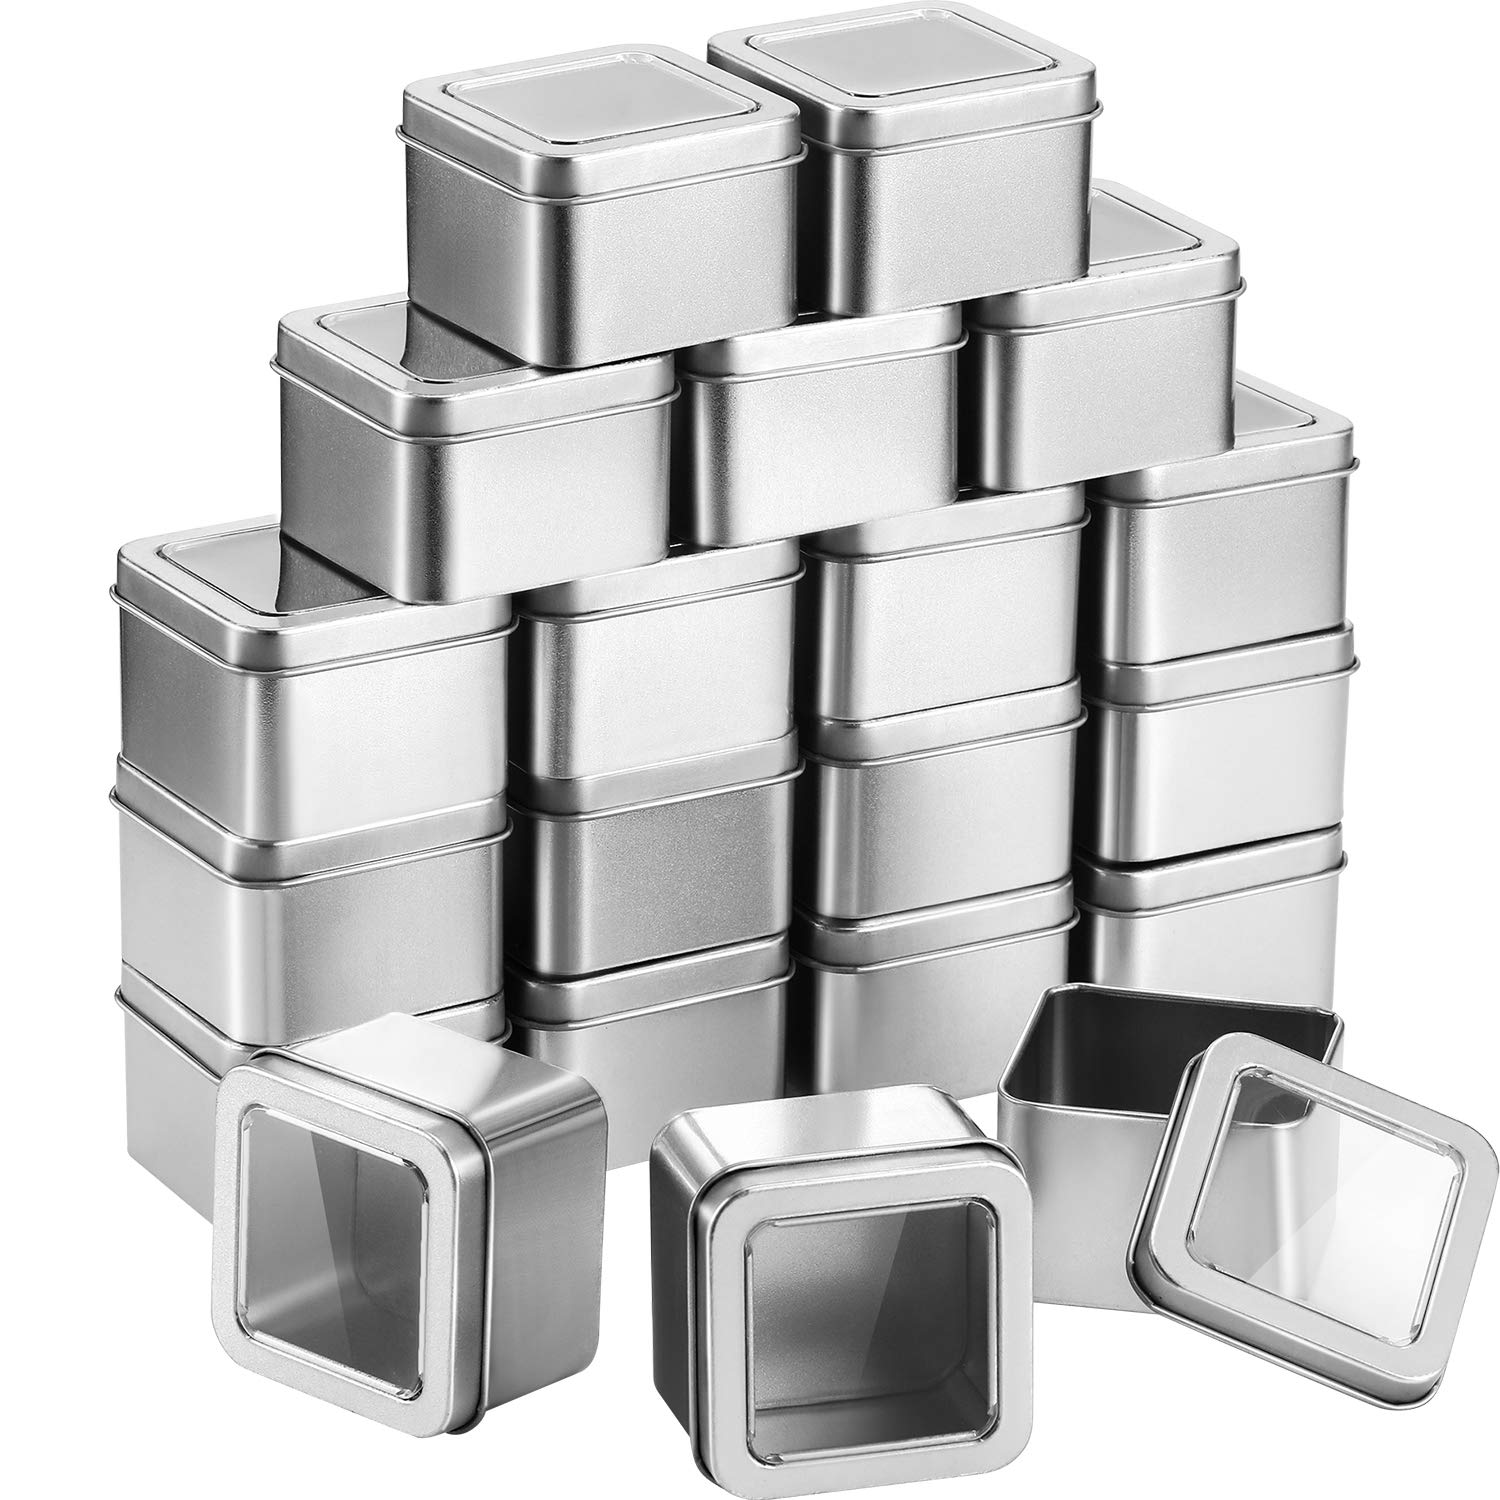 Pangda 20 Pack Empty 4-Ounce Capacity Clear Top Square Silver Metal Tins Great for Candles, Gifts, Candies, and Treasures